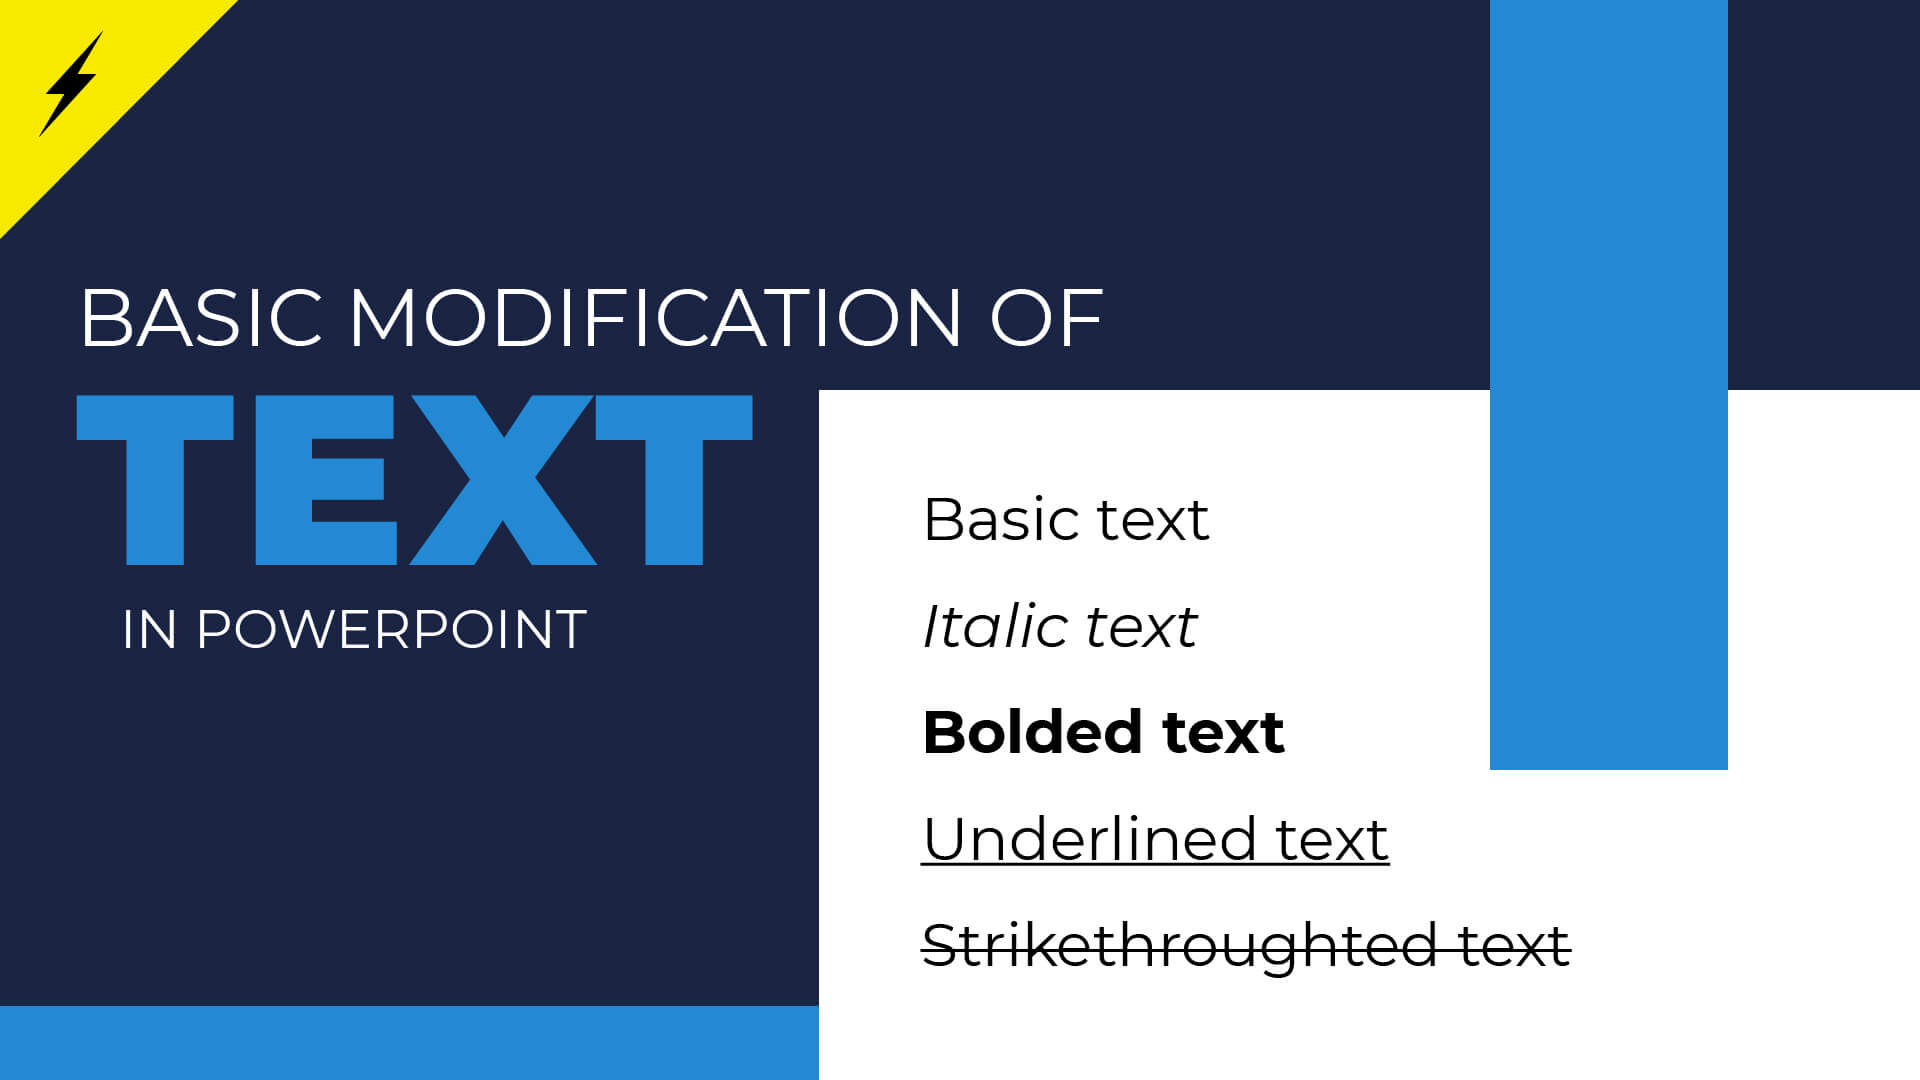 Basic text modification in PowerPoint